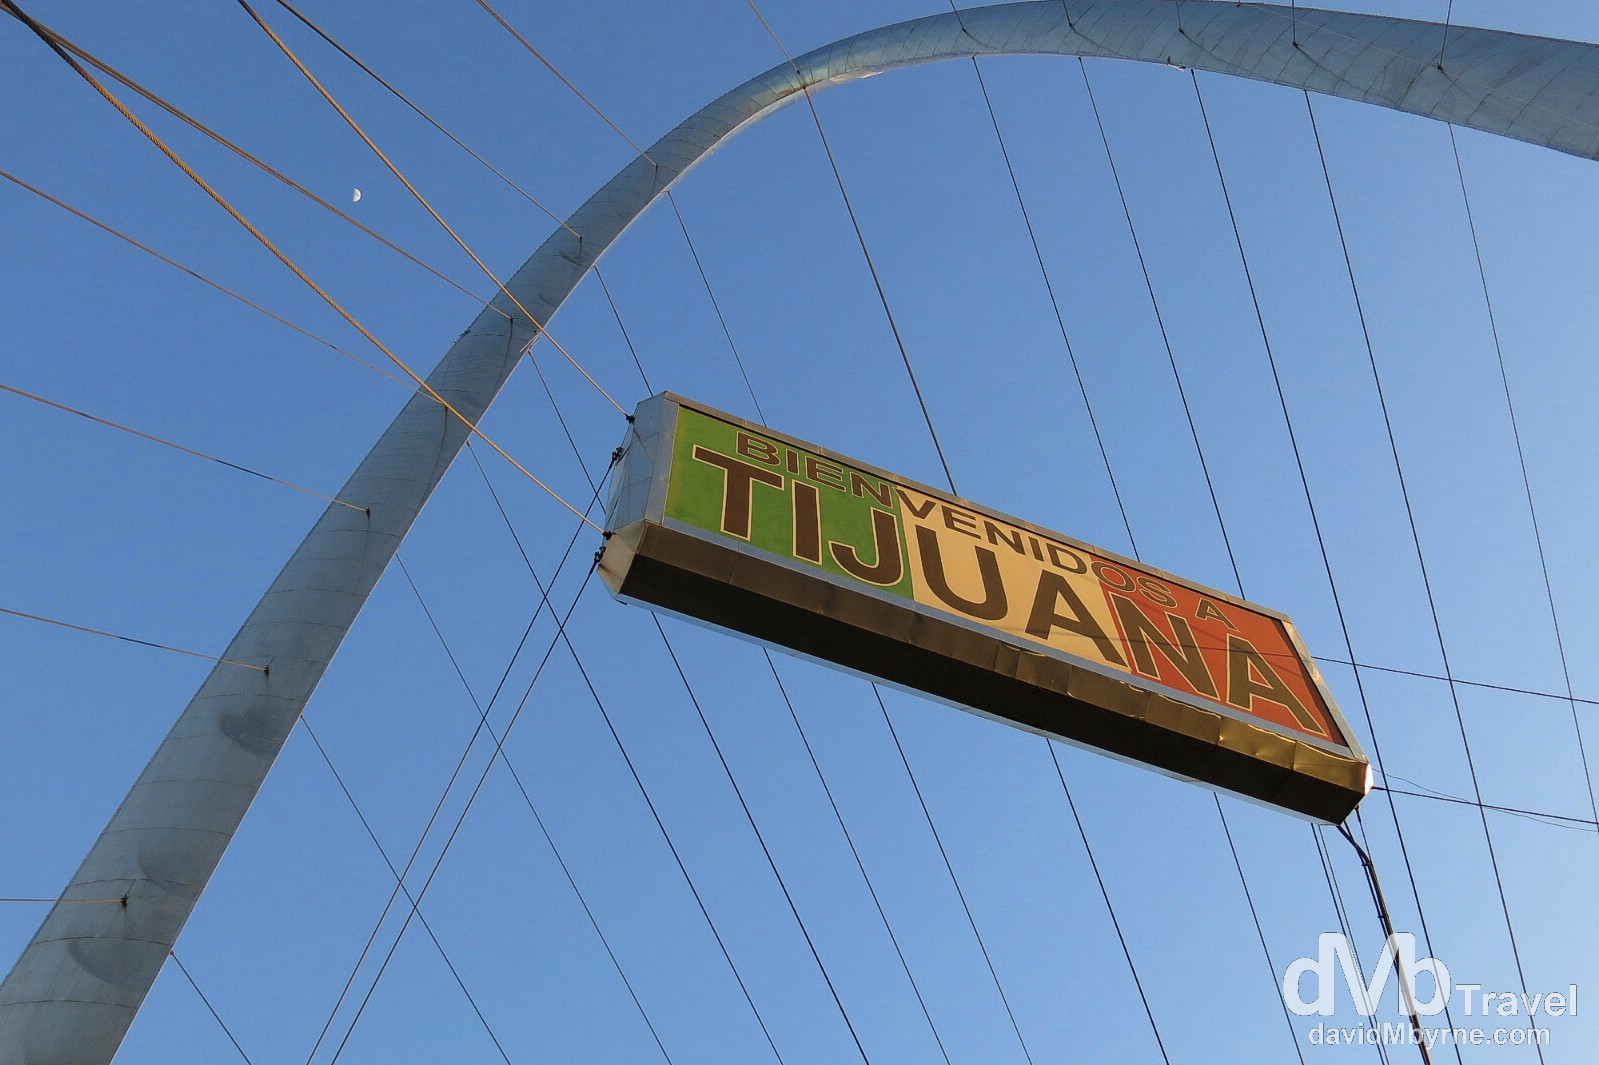 Umm, there's not much else to photography in TJ so here's another picture of the city's landmark arch on Avenue Revolucion (La Revo). Tijuana, Mexico. April 18th.